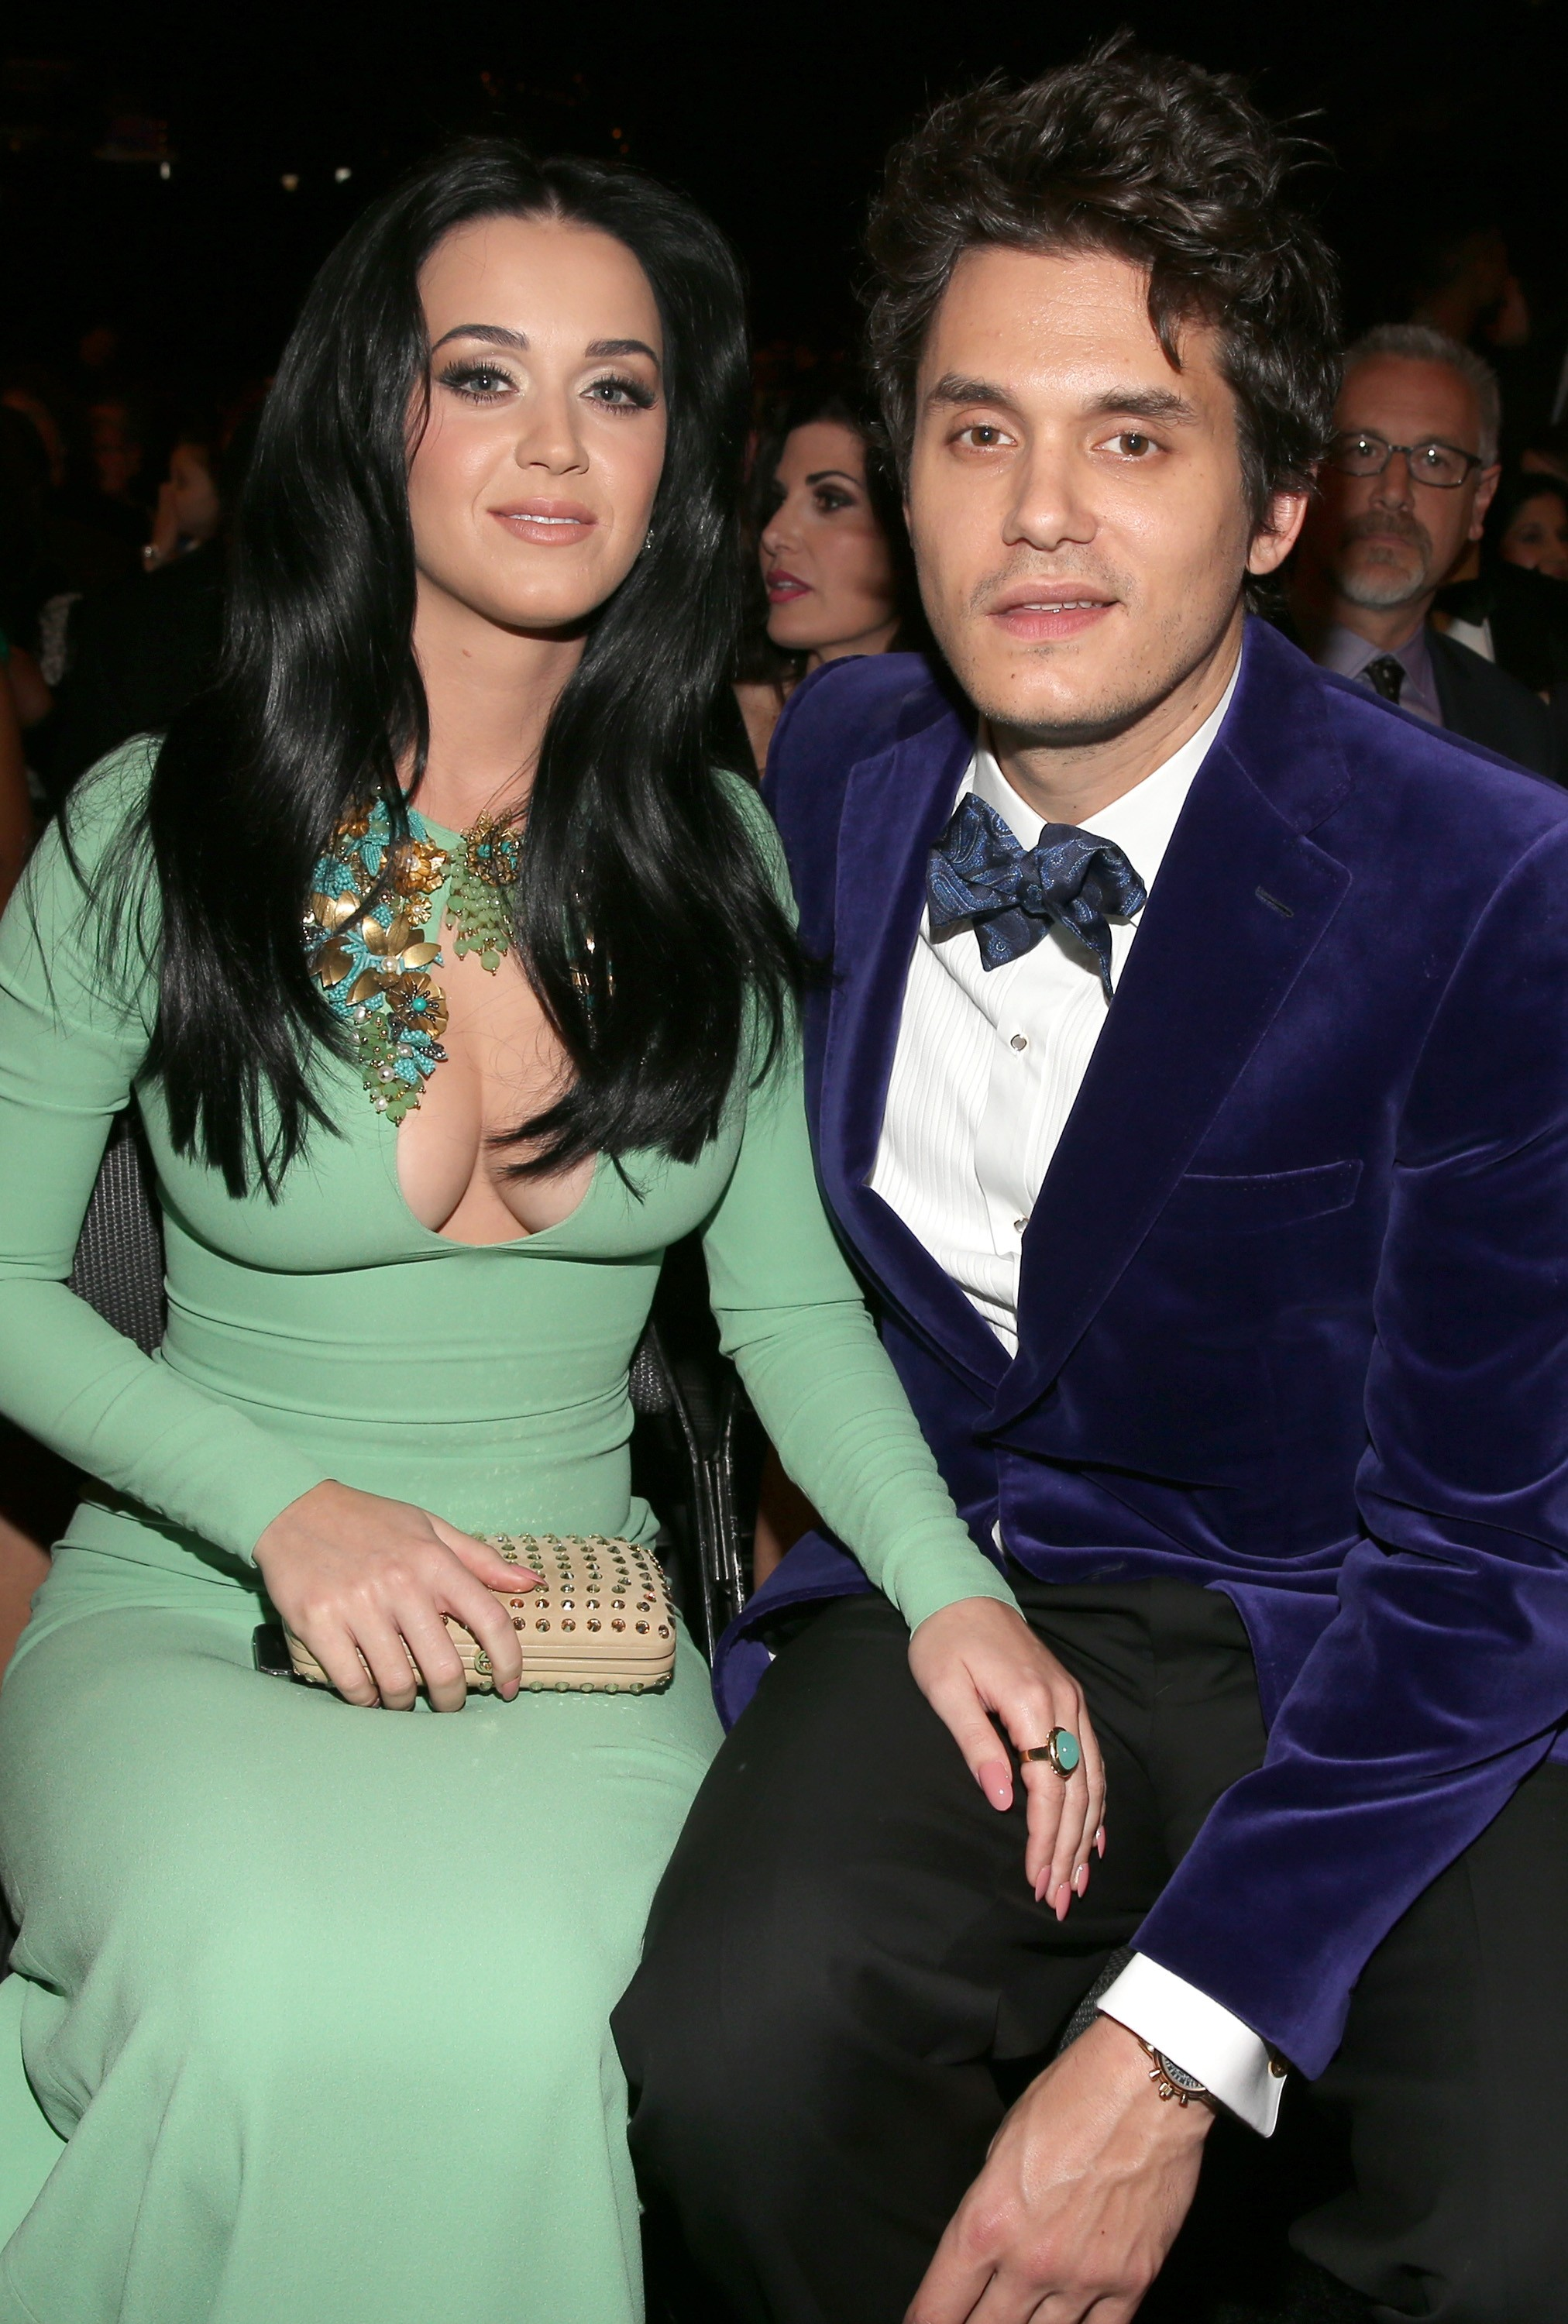 Katy perry e John Mayer (Foto: Getty Images)